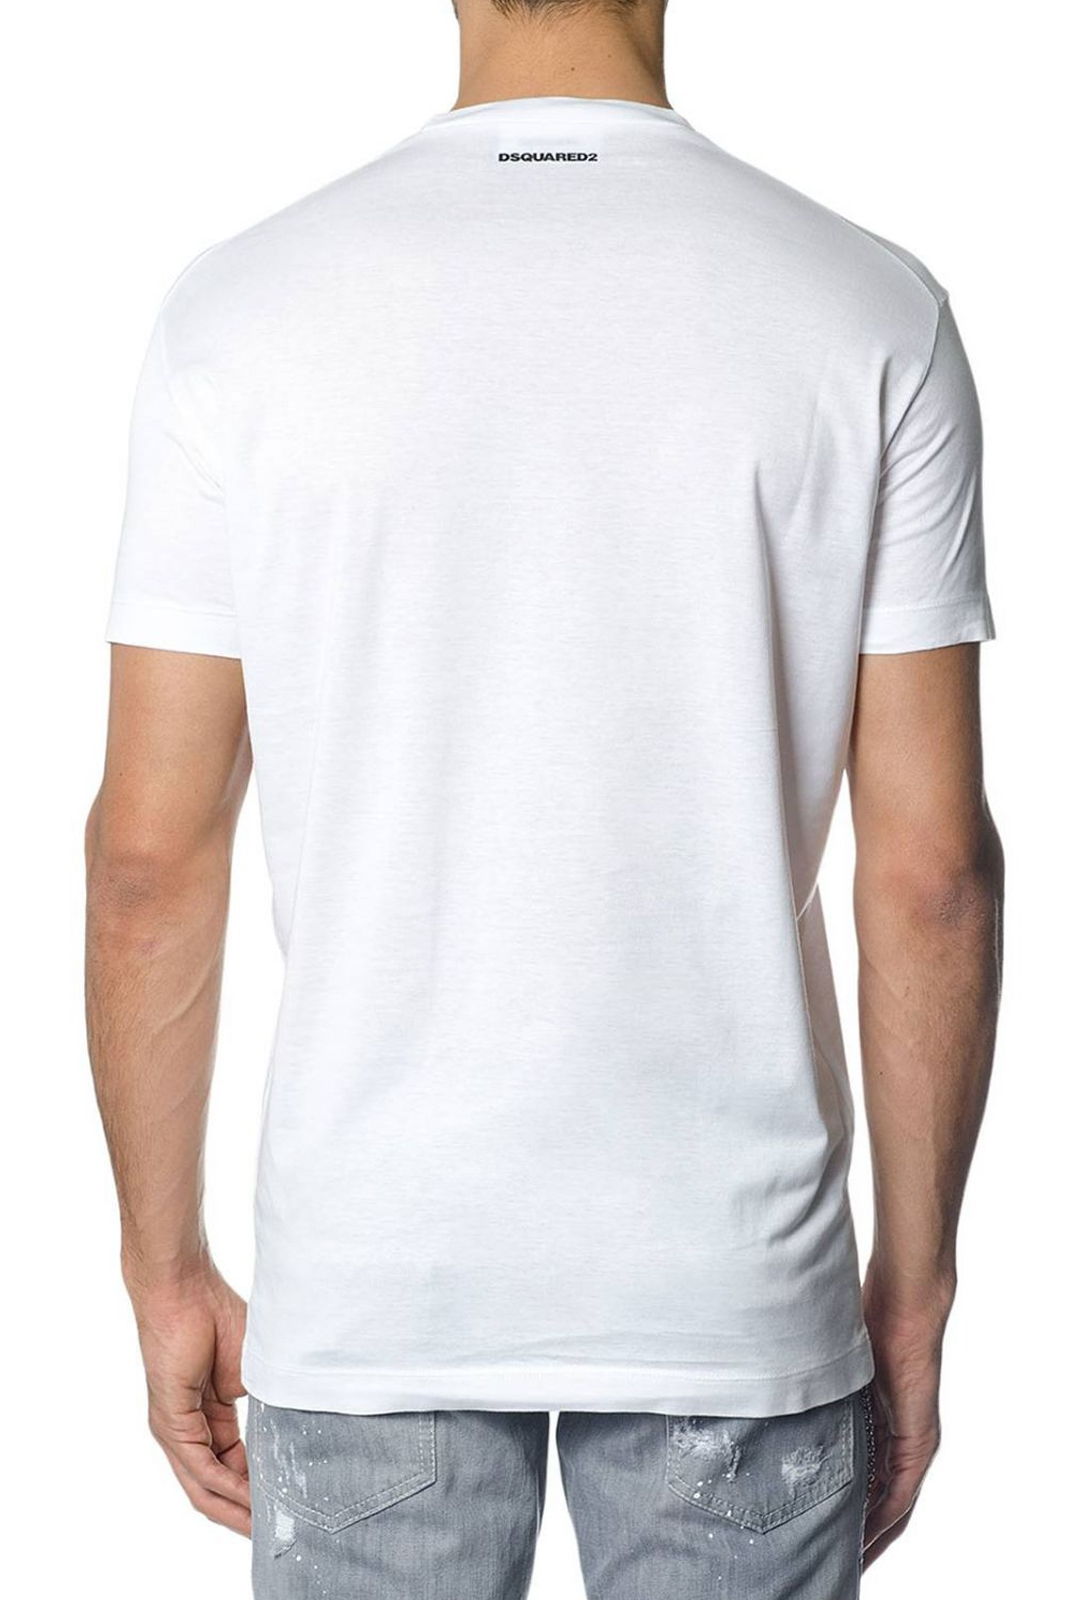 Tee-shirts  Dsquared2 S74GD0362 100 WHITE